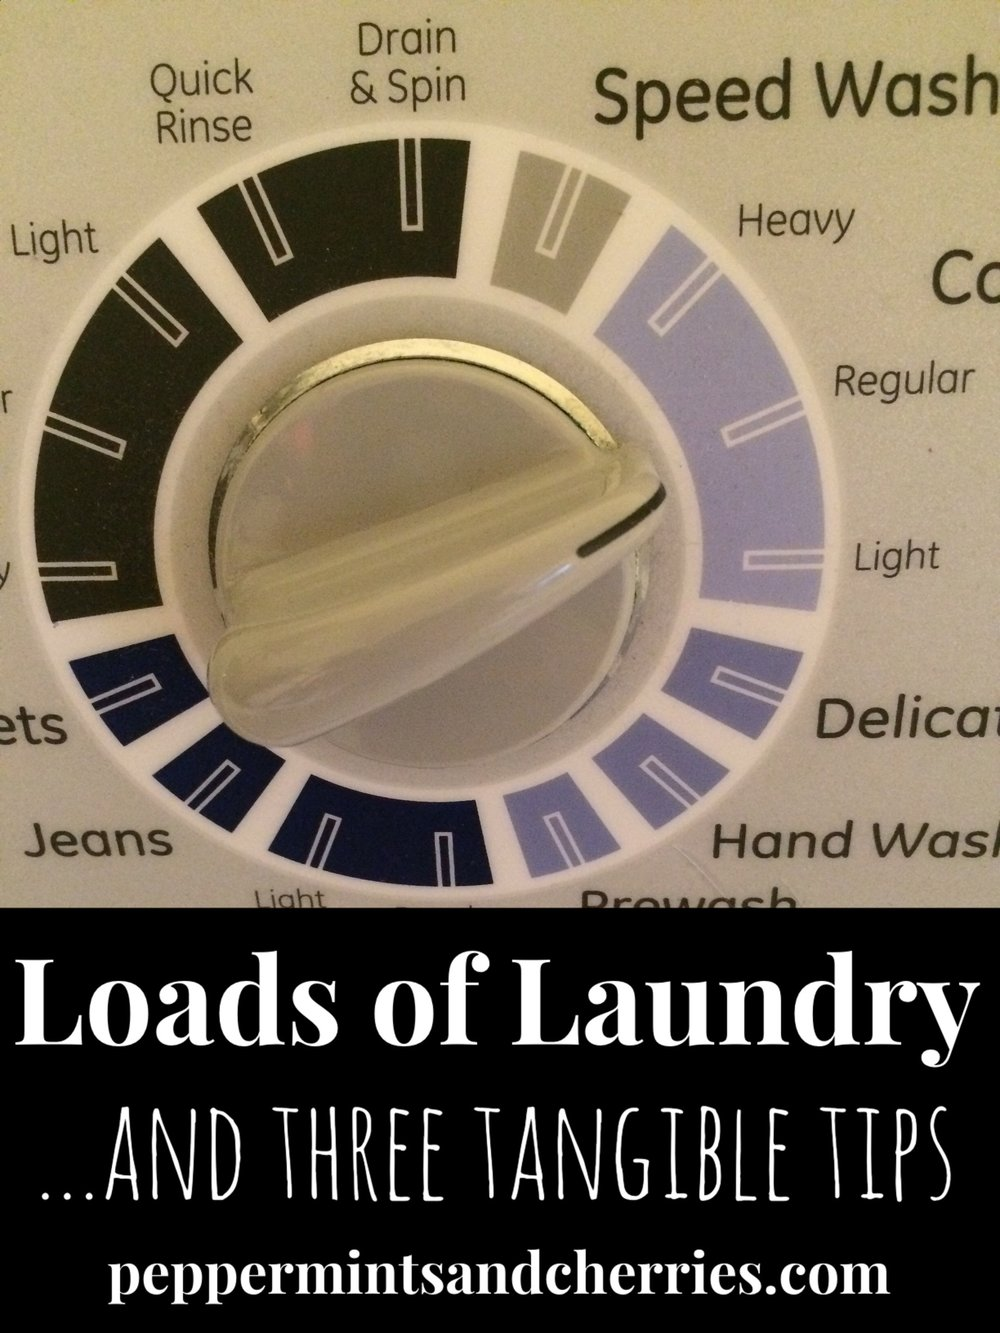 Loads of Laundry and Three Tangible Tips